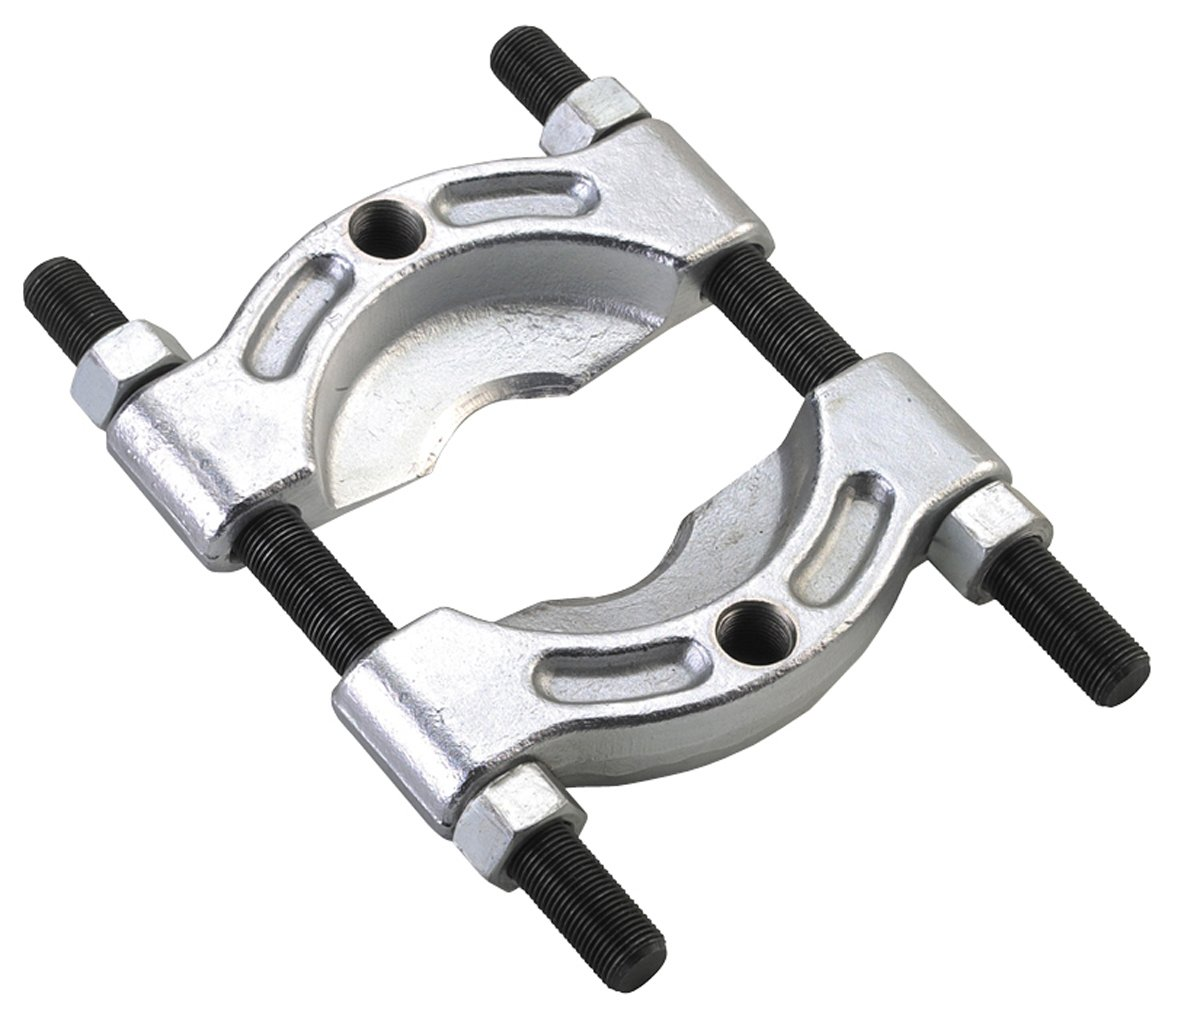 OTC (1126) Bearing Splitter - 5/8'' to 8'' by OTC (Image #1)